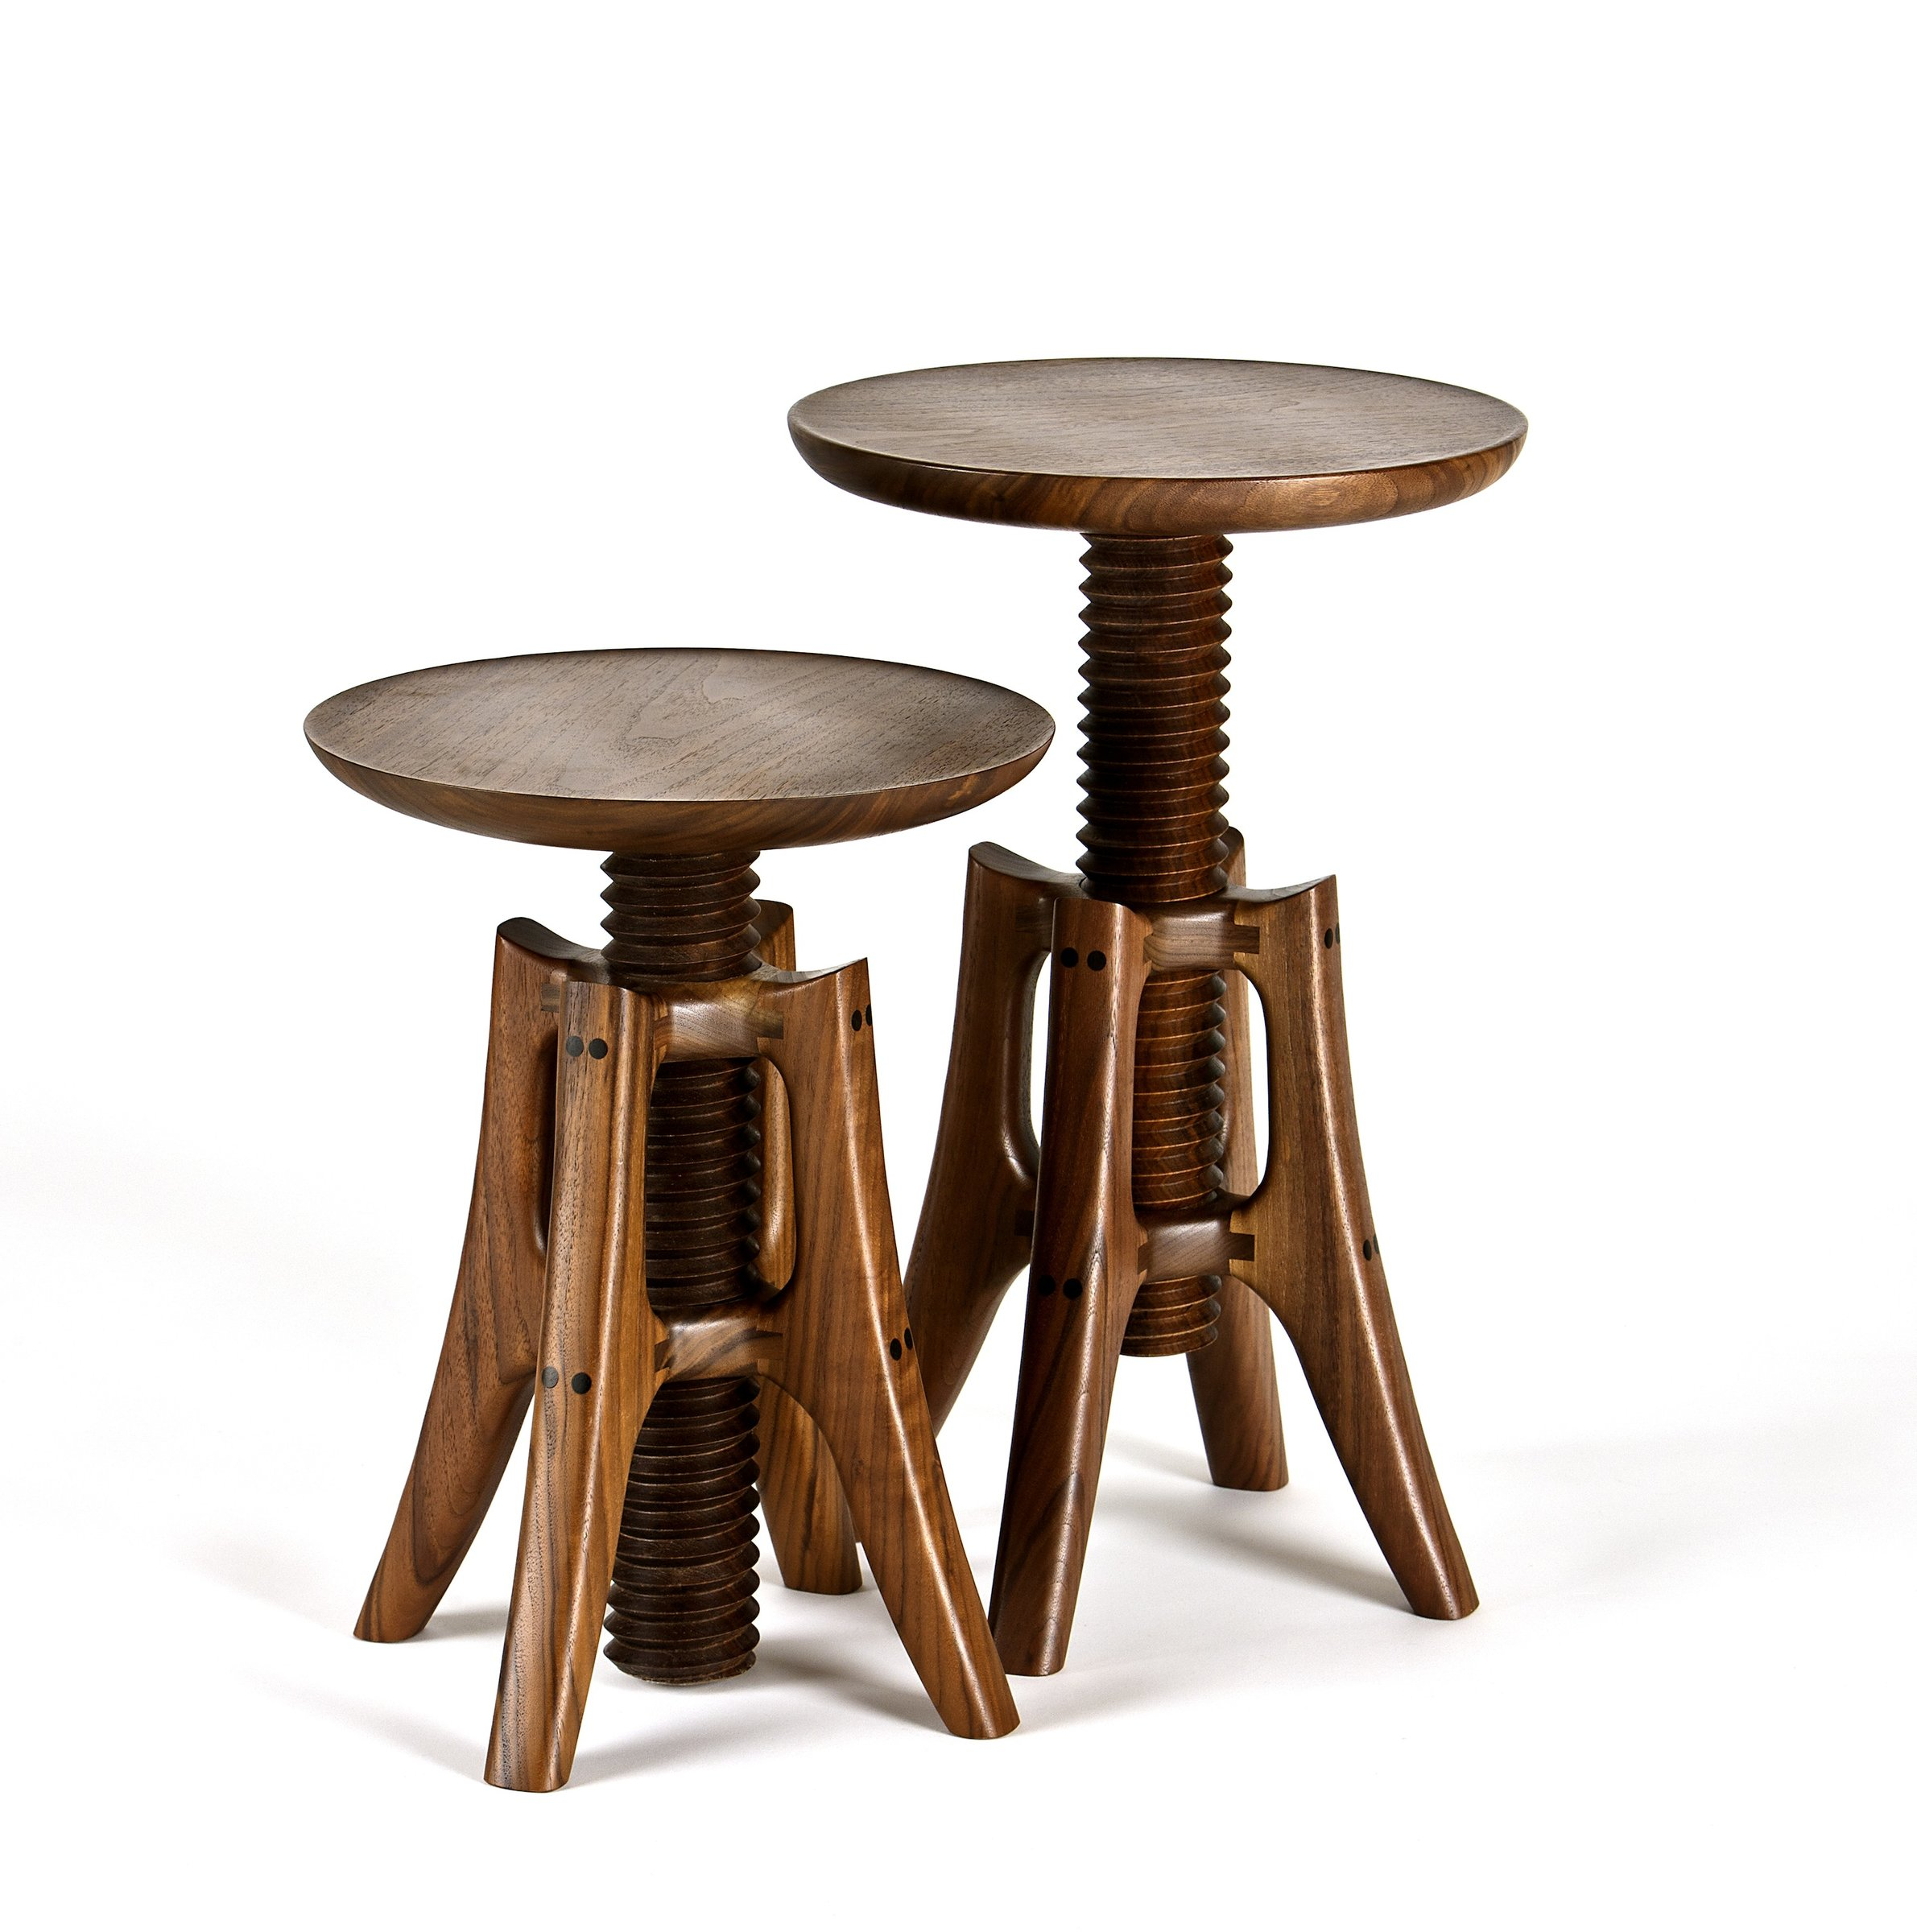 Piano Stool in Walnut by James Pearce Wood Stool